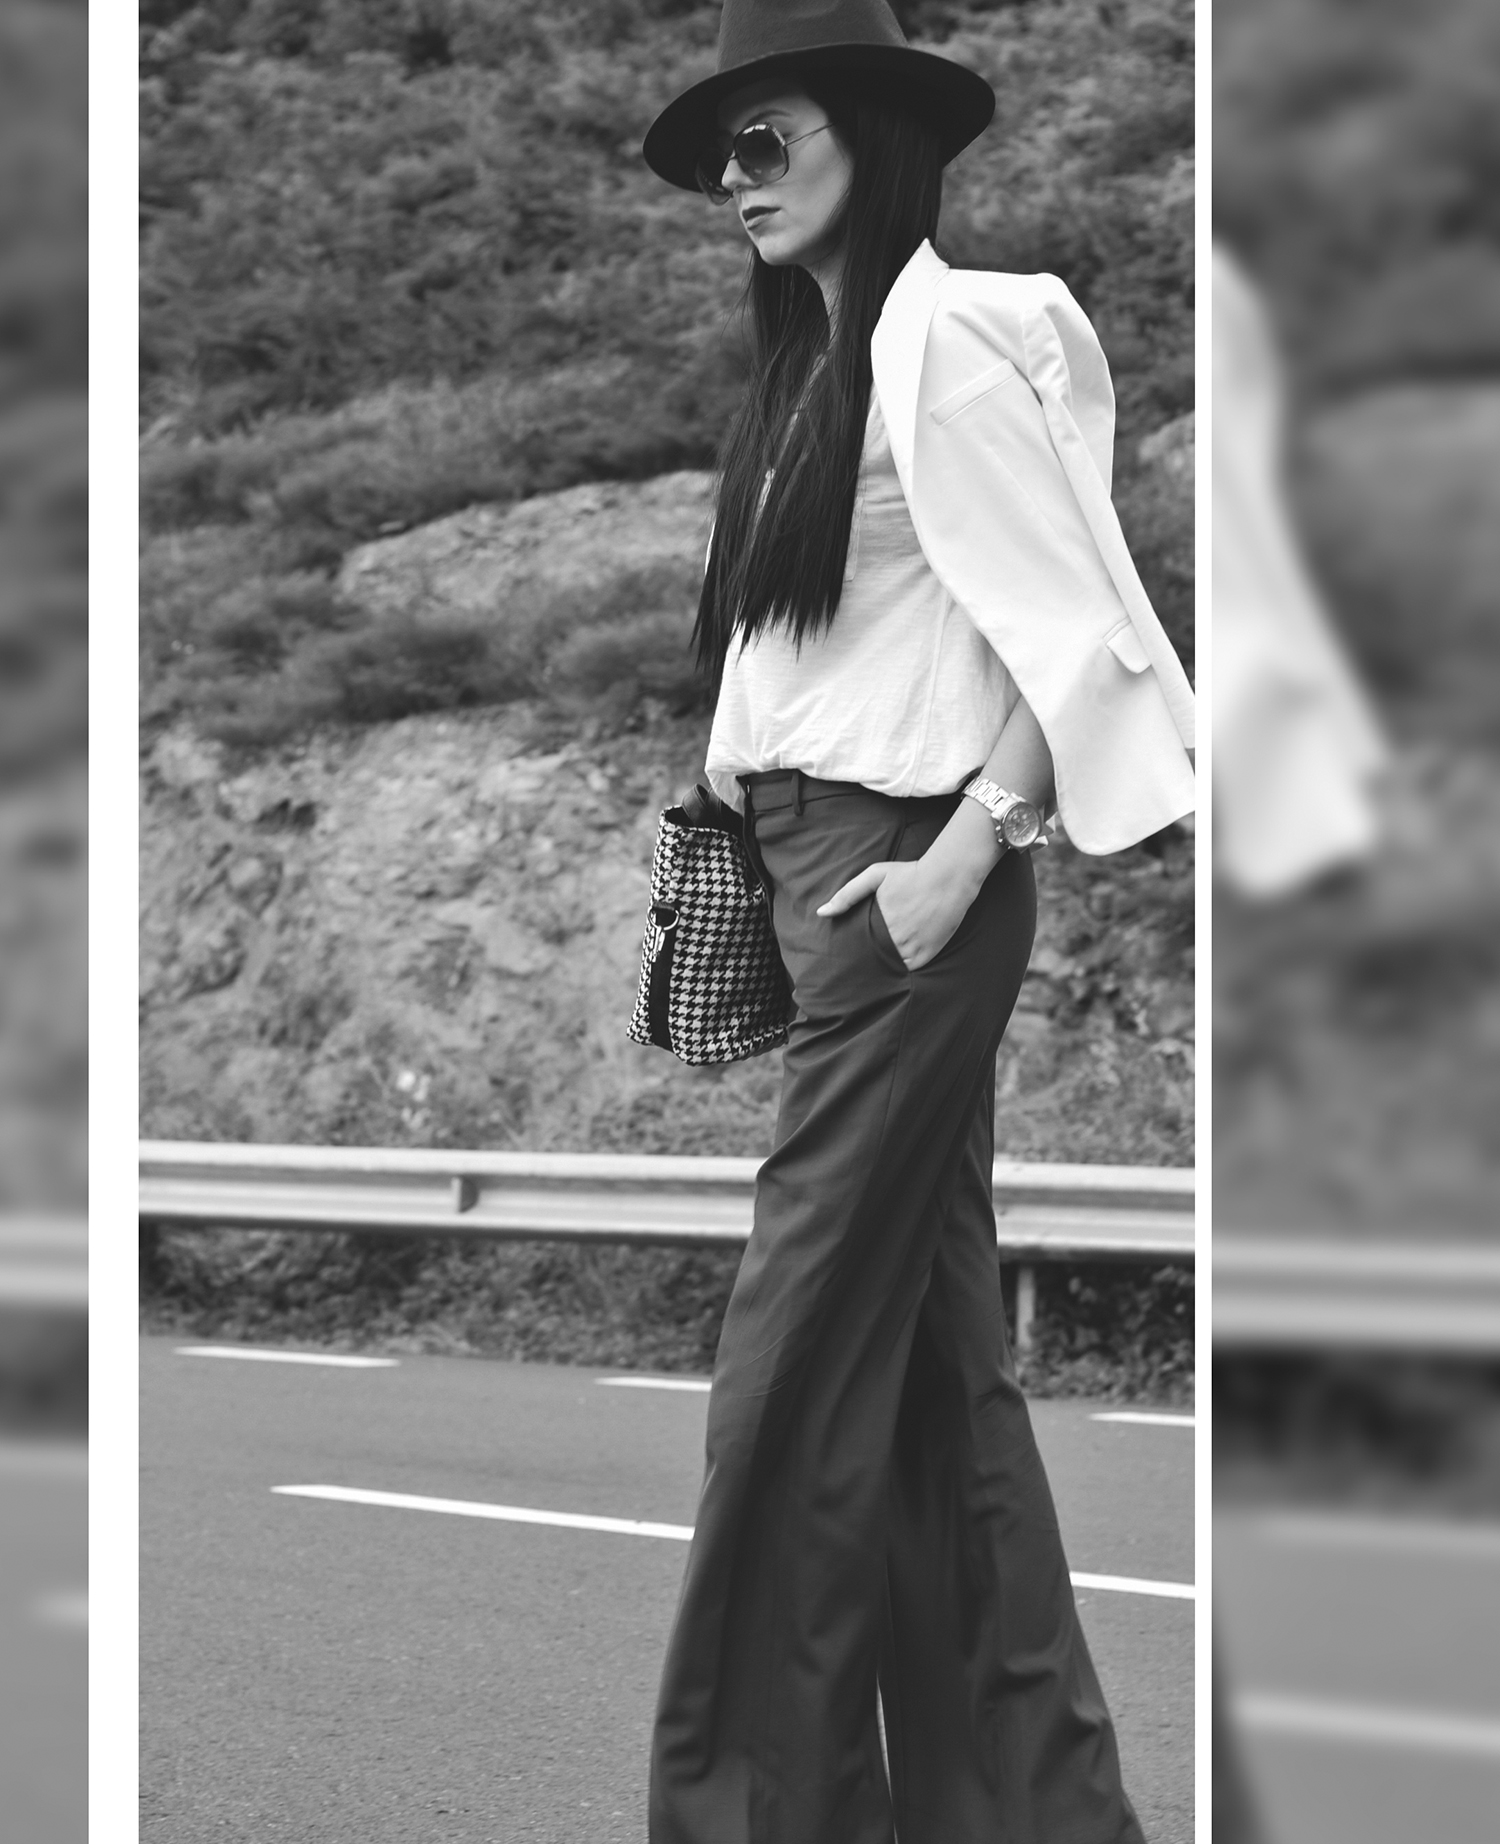 black-white-photography-blogger-fashion-model-wide-leg-pants-stylish-classy-chic-minimalist-editorial (2)